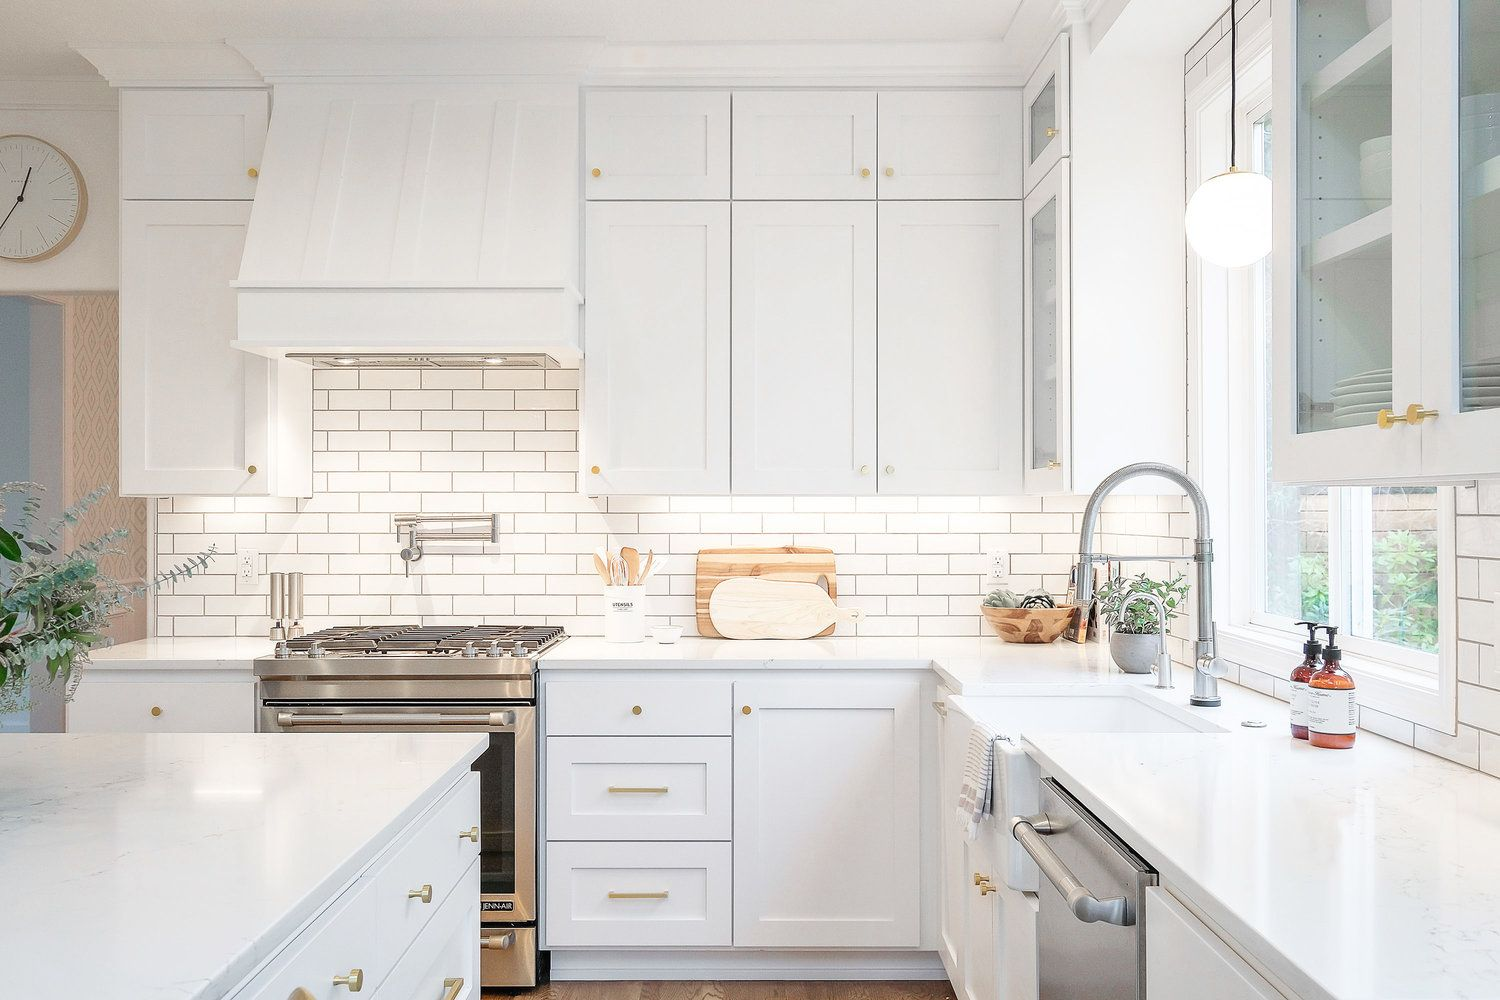 Gorgeous All White Kitchen With Mixed Metal Fixtures And Hardware Kitchen Remodel Small Kitchen Design Small Kitchen Fixtures